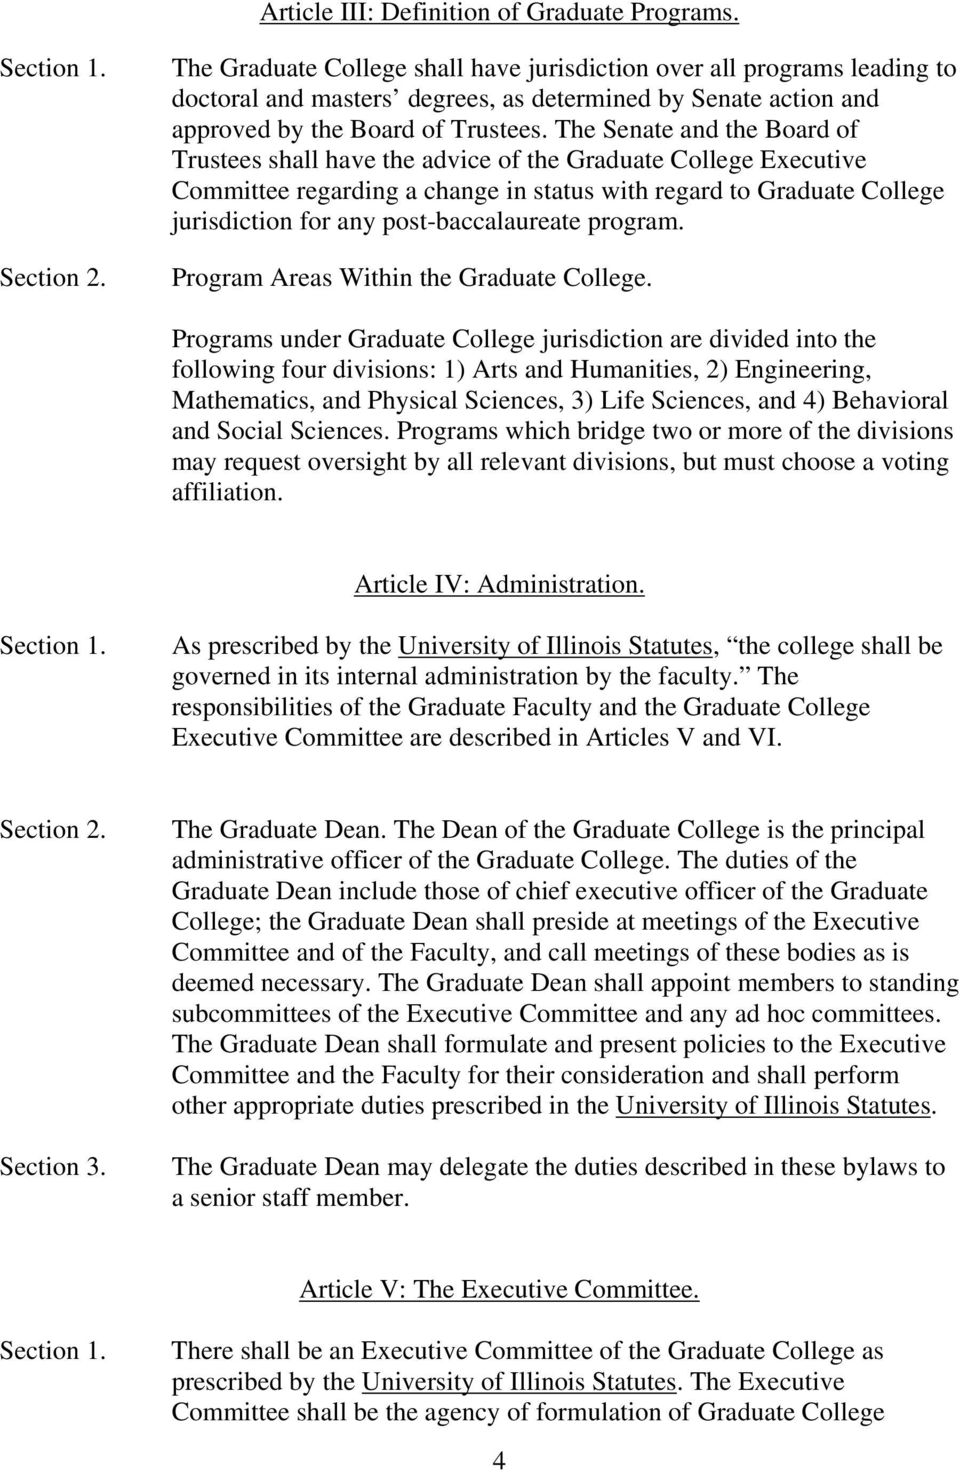 The Senate and the Board of Trustees shall have the advice of the Graduate College Executive Committee regarding a change in status with regard to Graduate College jurisdiction for any